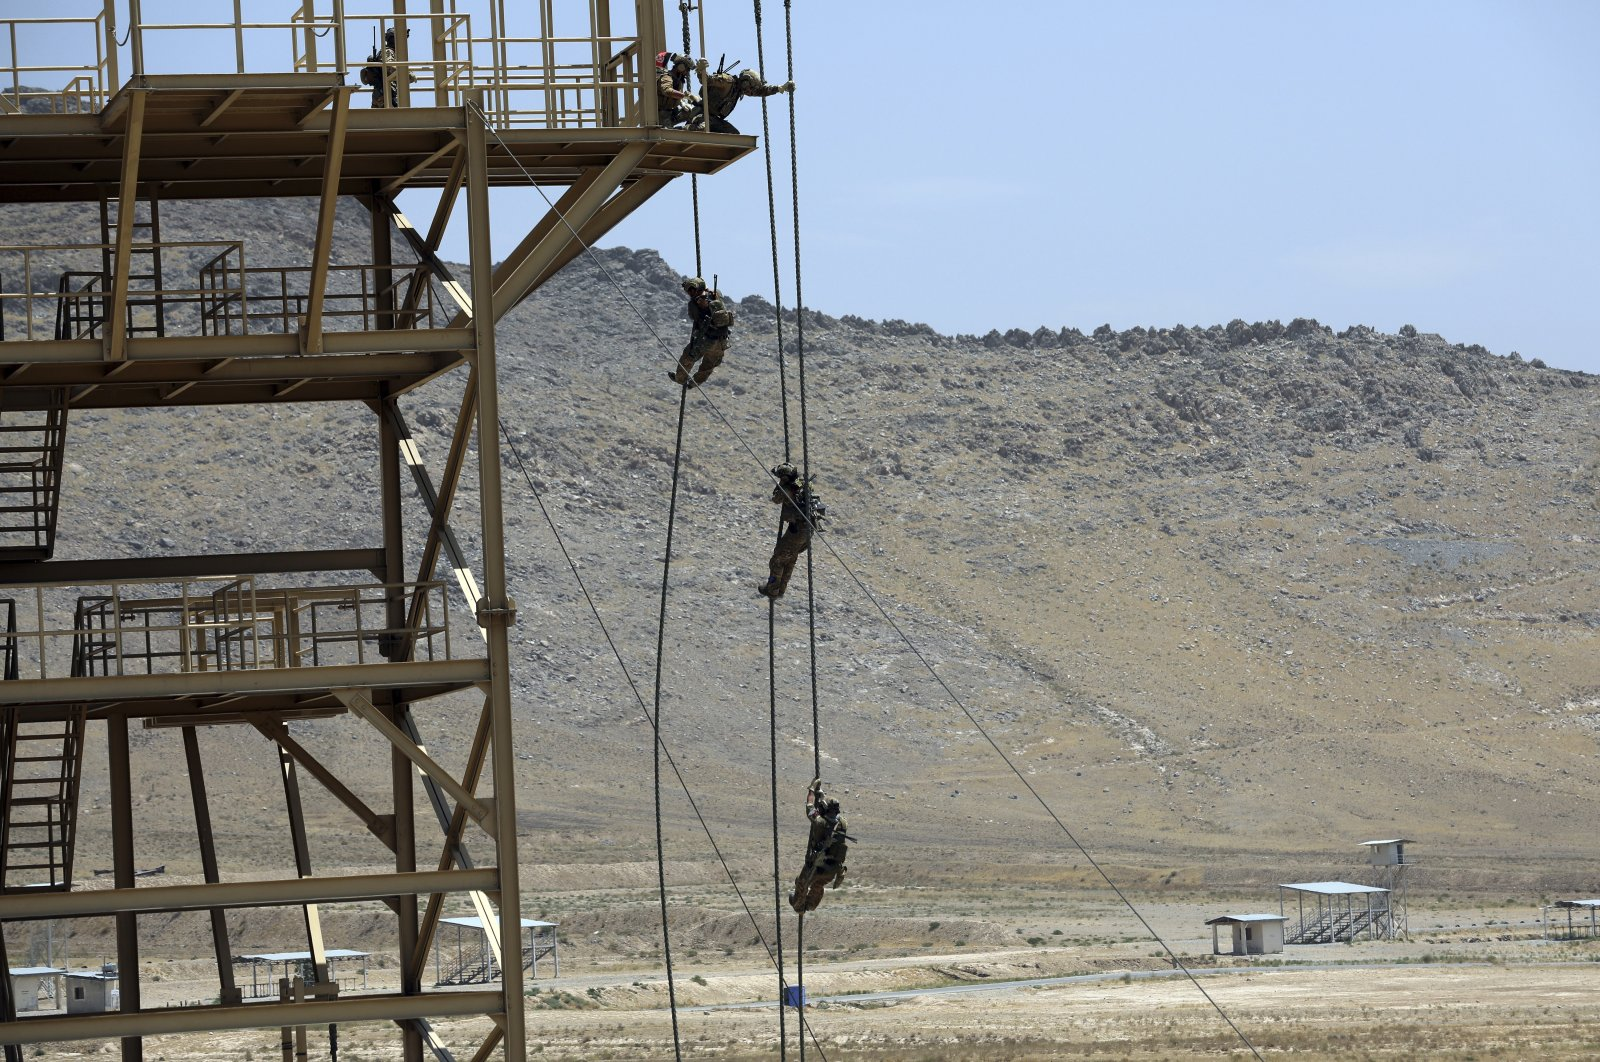 Afghan Special Forces take part in a training exercise after a three-month training program at the Kabul Military Training Center in Kabul, Afghanistan, July 17, 2021. (AP Photo)